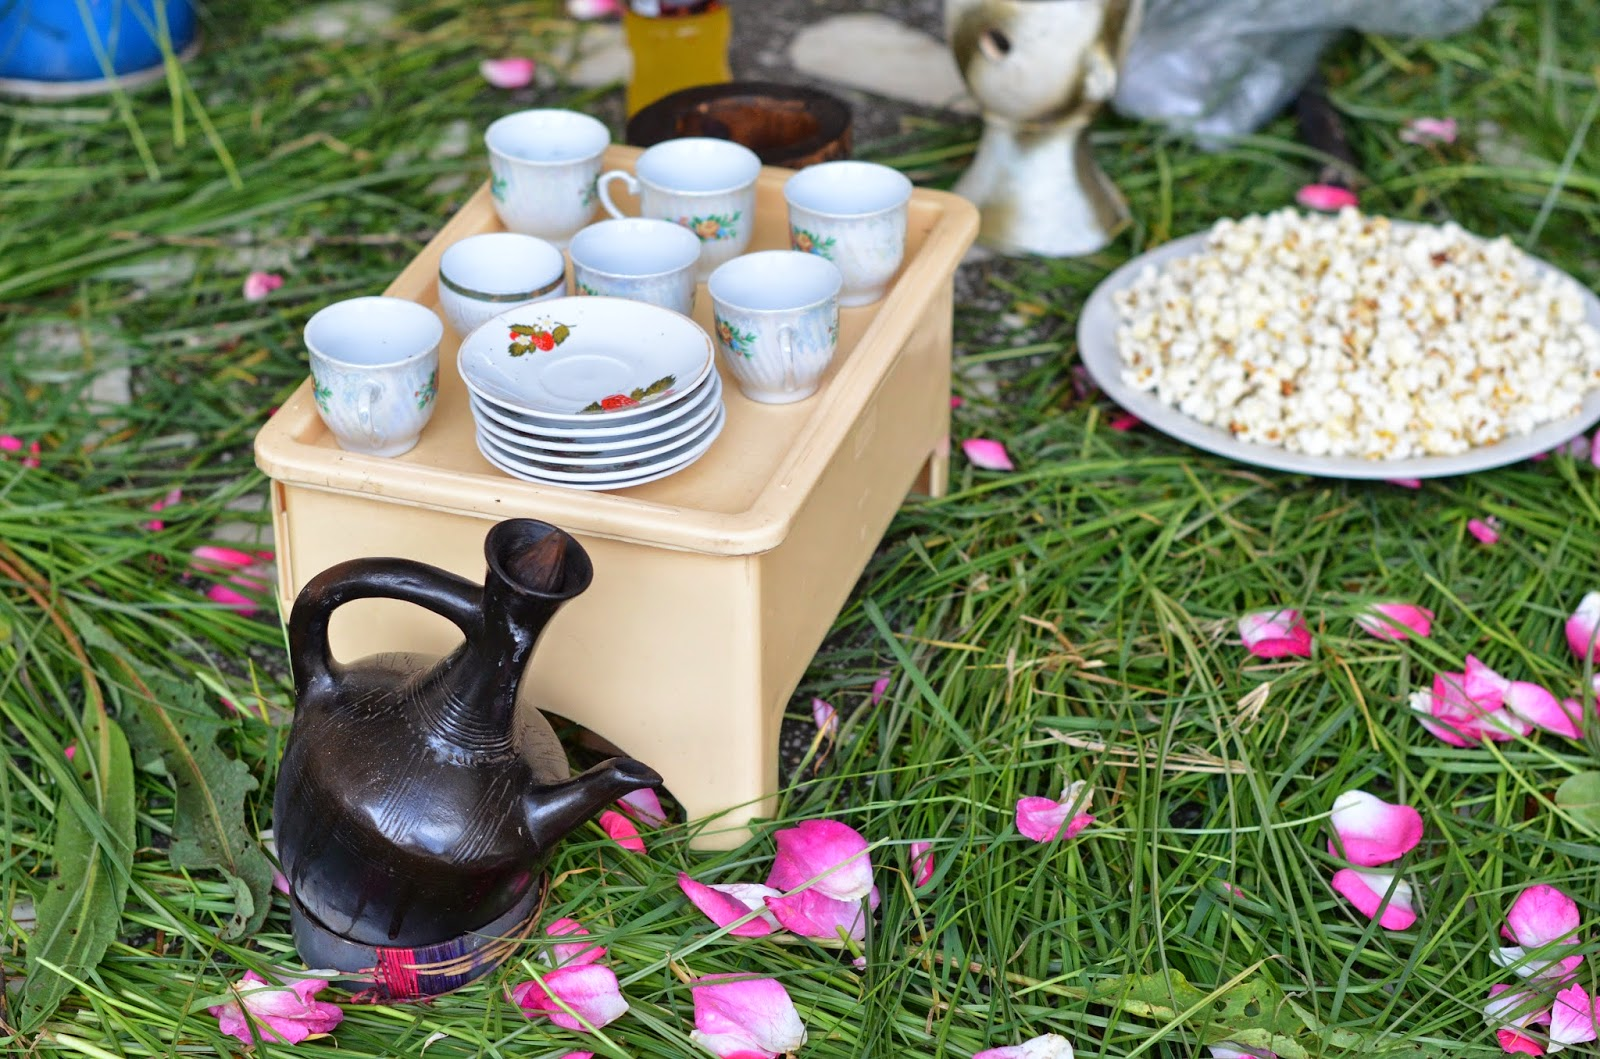 our yuppie life it s strong and always has a thickness to it it s really wonderful and uniquely ethiopian eneye performs the coffee ceremony every evening at her house